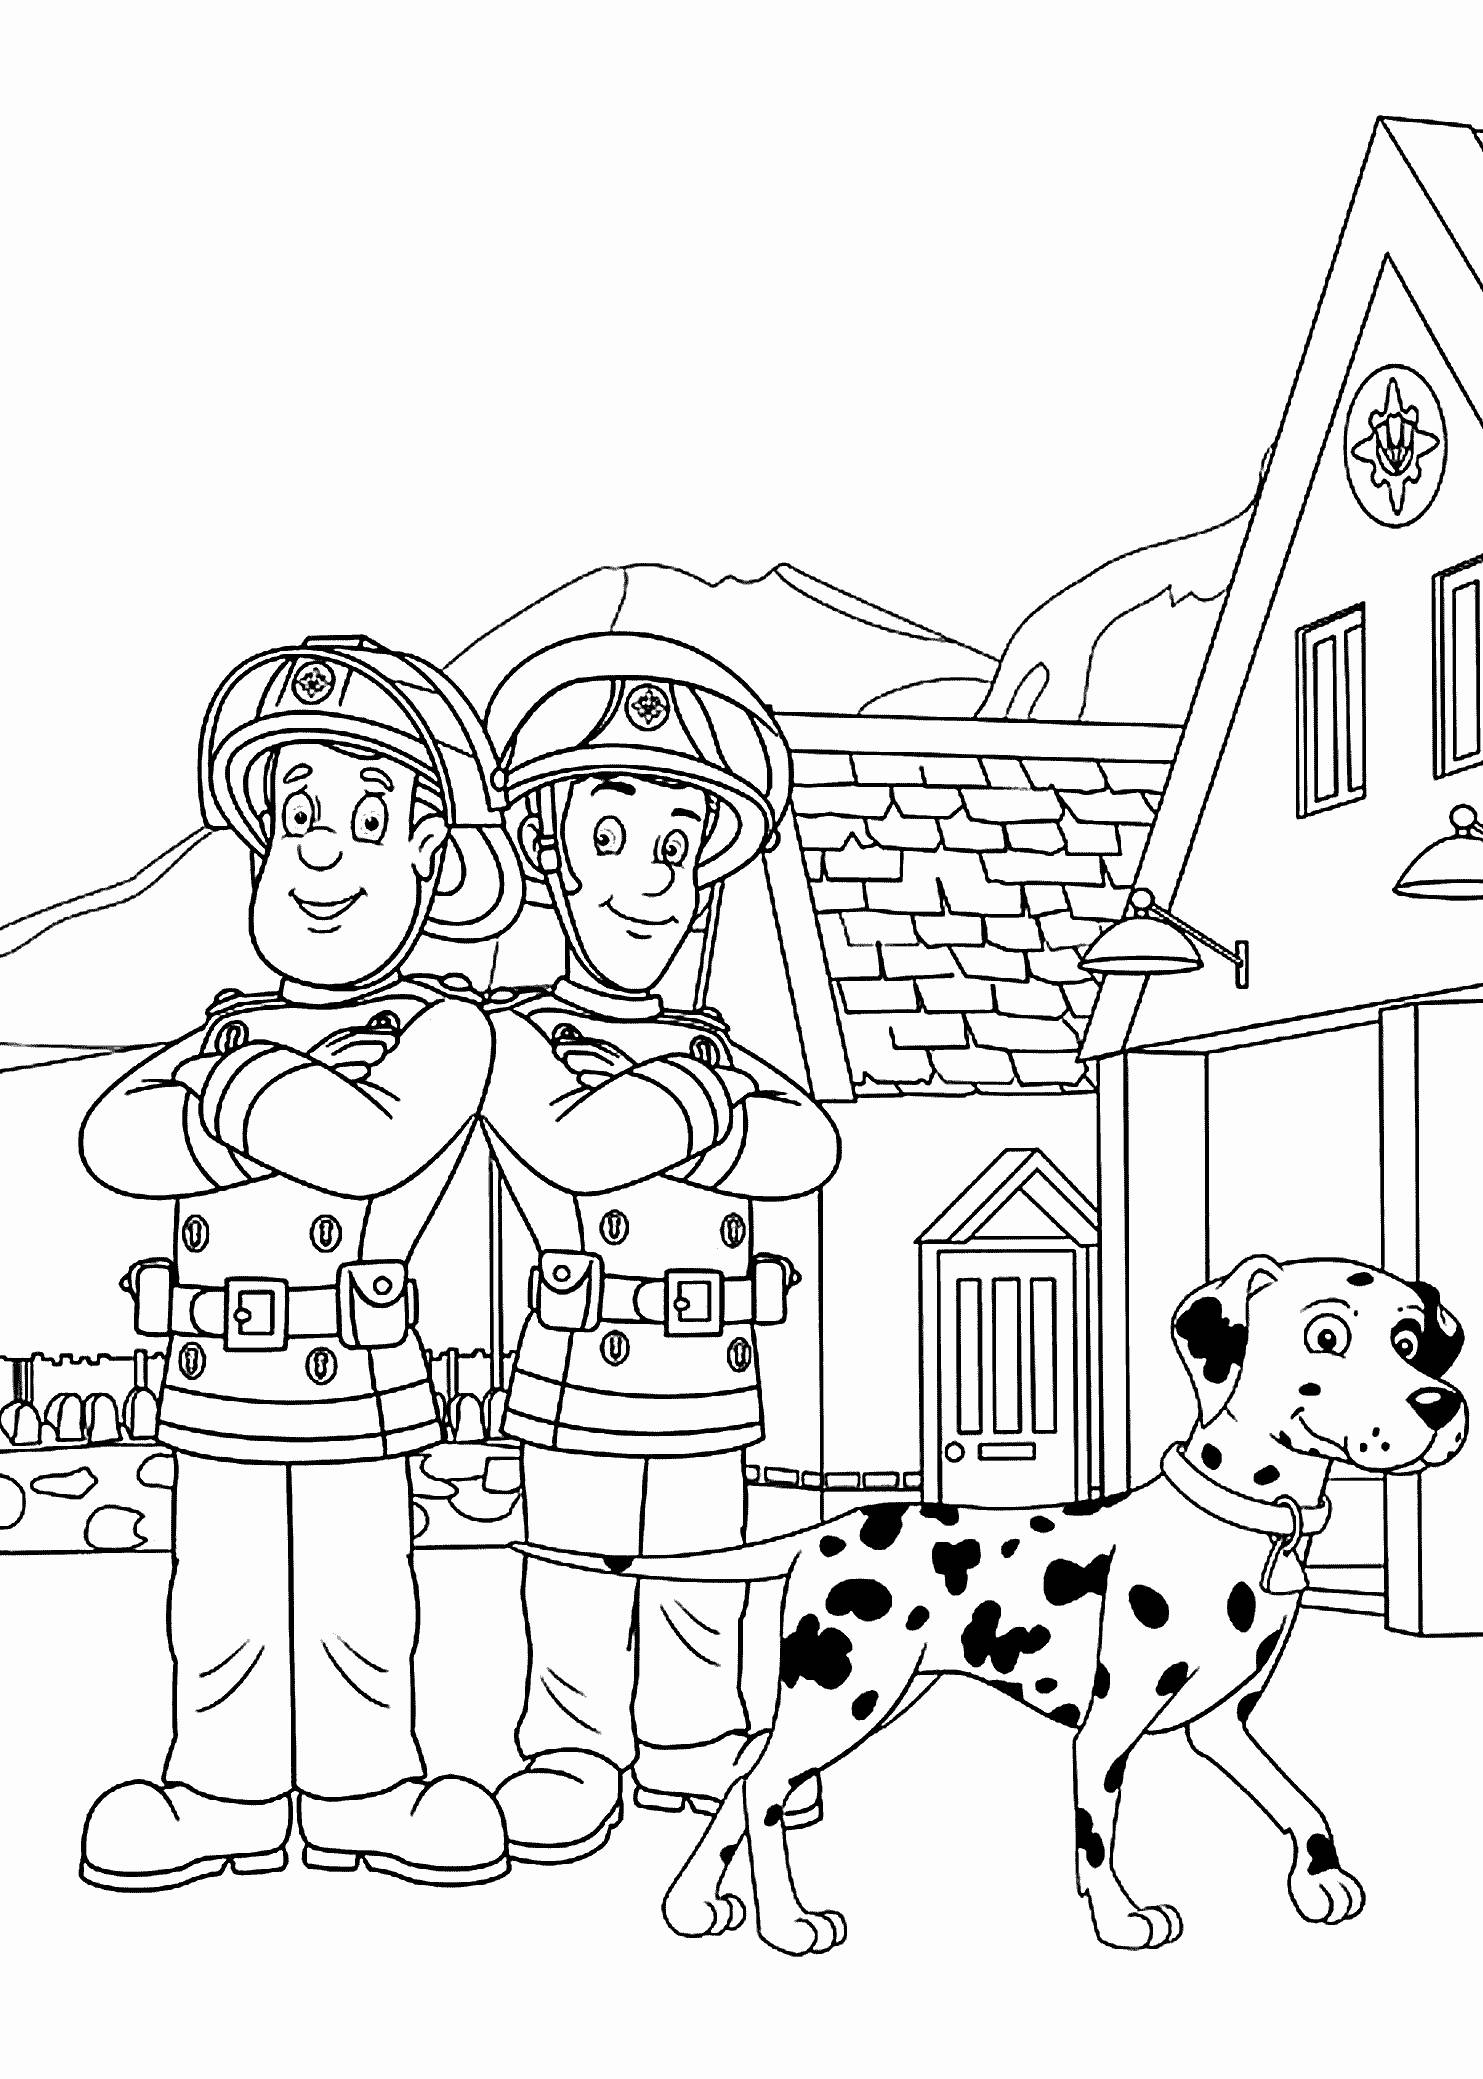 Firefighter Coloring Pages for Preschoolers Printable ...